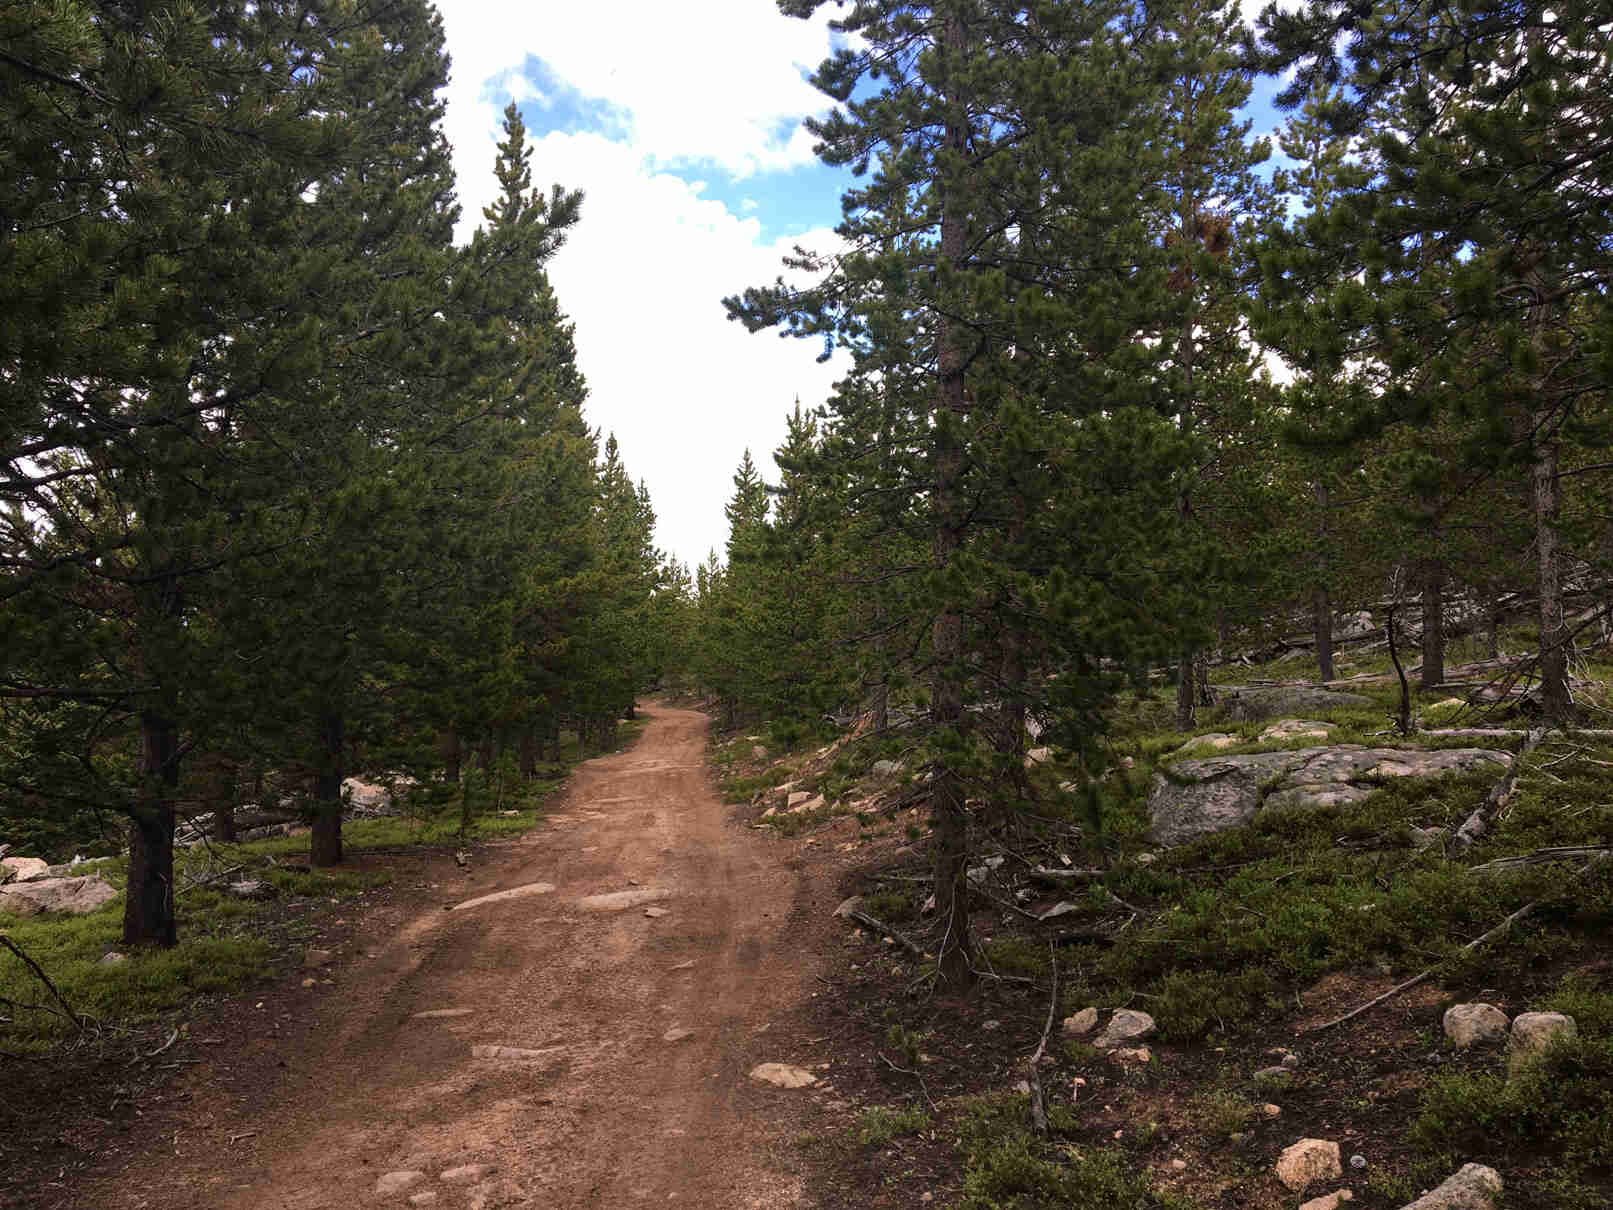 View down a dirt trail between pine trees